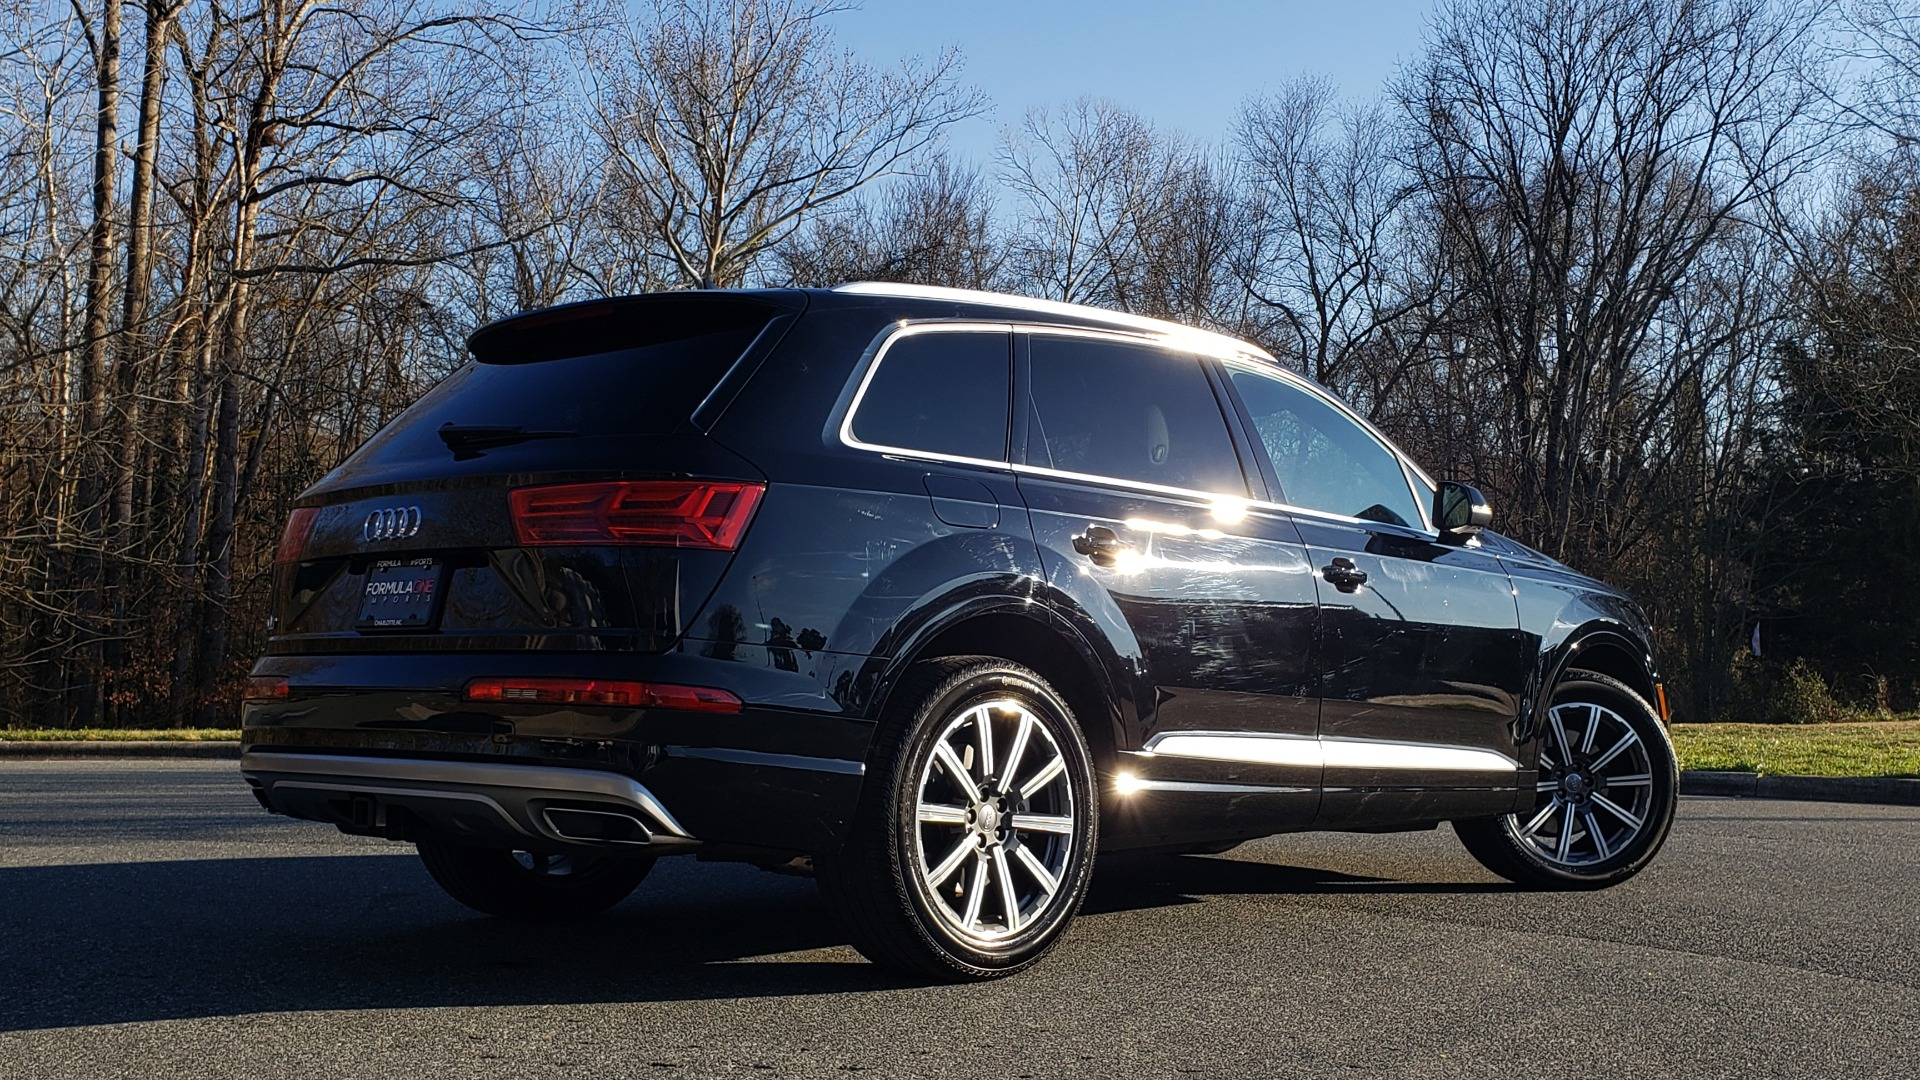 Used 2019 Audi Q7 PREMIUM PLUS / NAV / PANO-ROOF / 3-ROW / REARVIEW for sale Sold at Formula Imports in Charlotte NC 28227 6